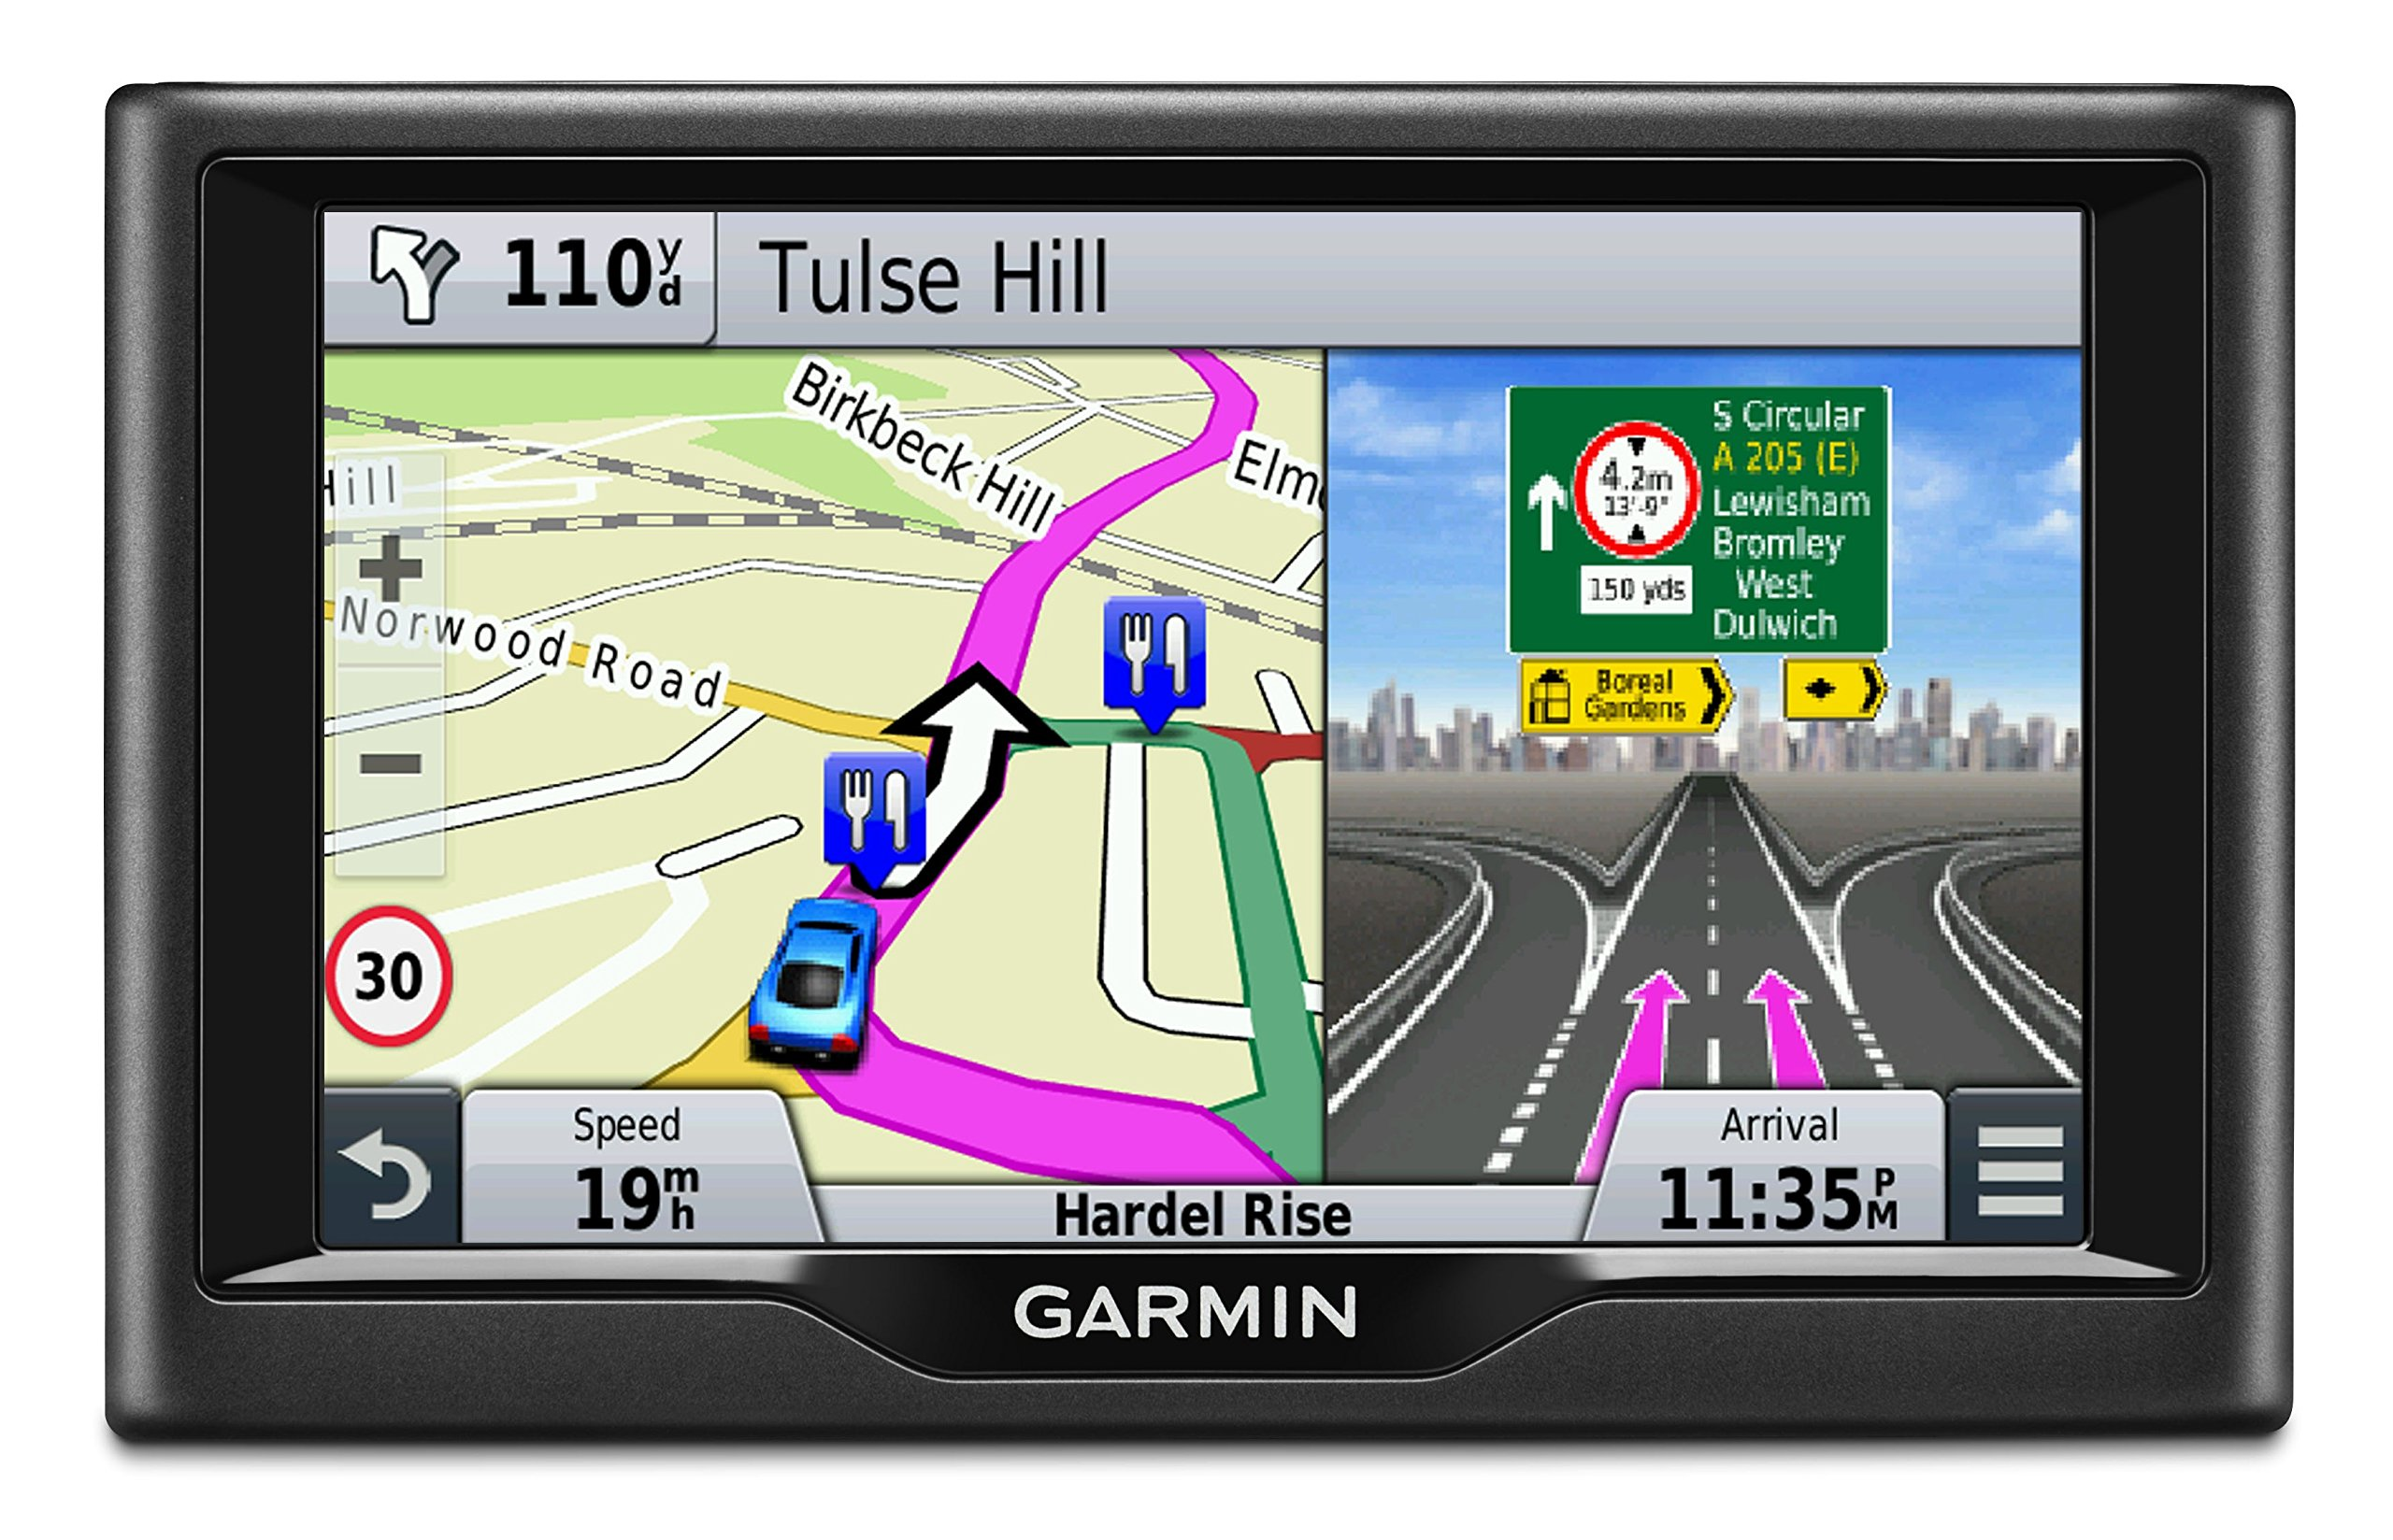 Garmin 010-01400-11 Nuvi 58LM 5 inch Satellite Navigation with UK, Ireland and Full Europe Free Lifetime Maps - Black (Certified Refurbished) product image